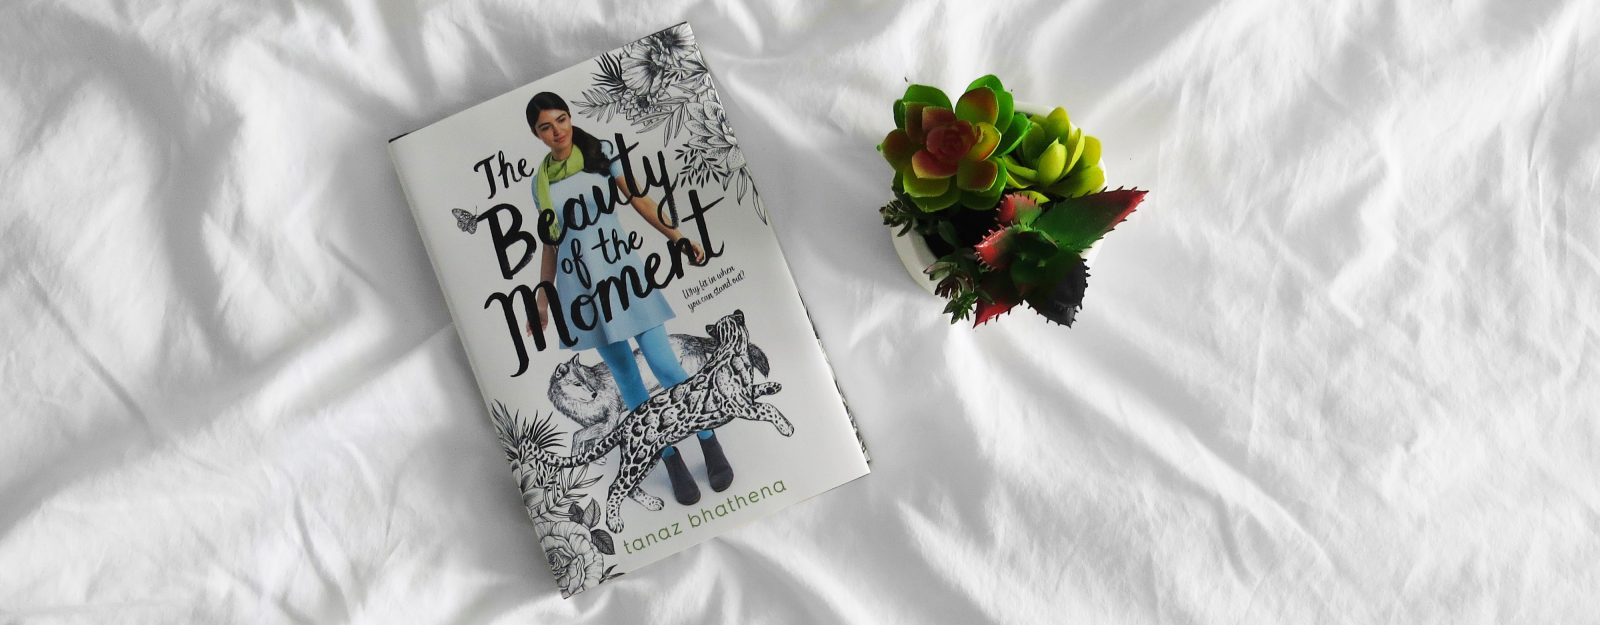 Blog Tour | The Beauty of the Moment by Tanaz Bhathena Review + Q&A